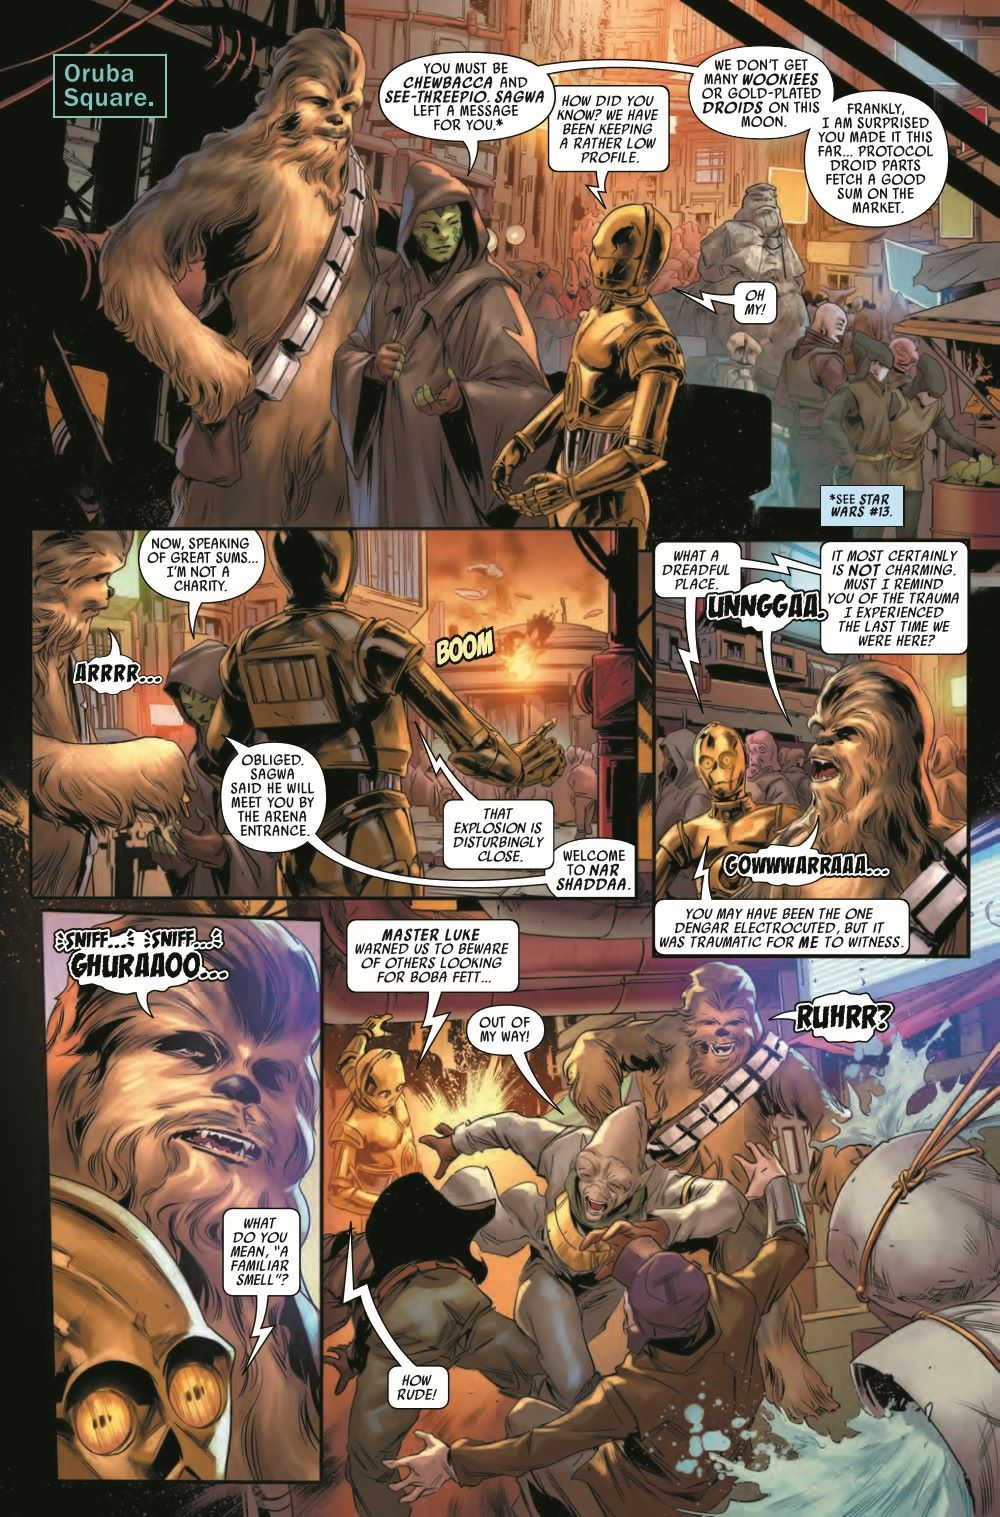 STWBOUNTYHUNT2020013_Preview-3 ComicList Previews: STAR WARS BOUNTY HUNTERS #13